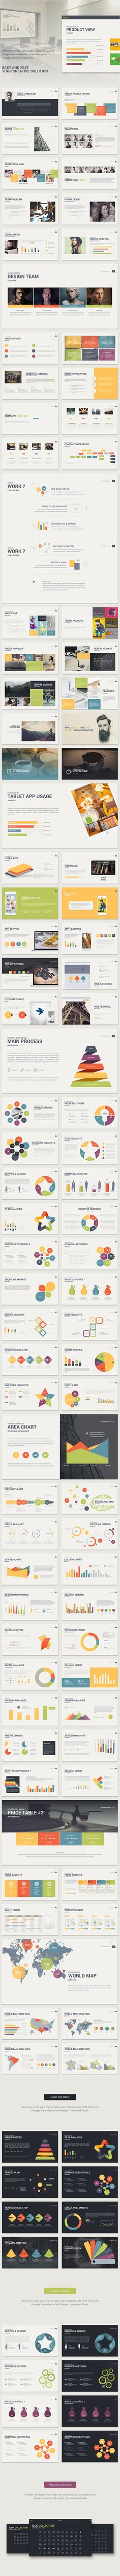 Best Ever Powerpoint Presentation Template Design Slides